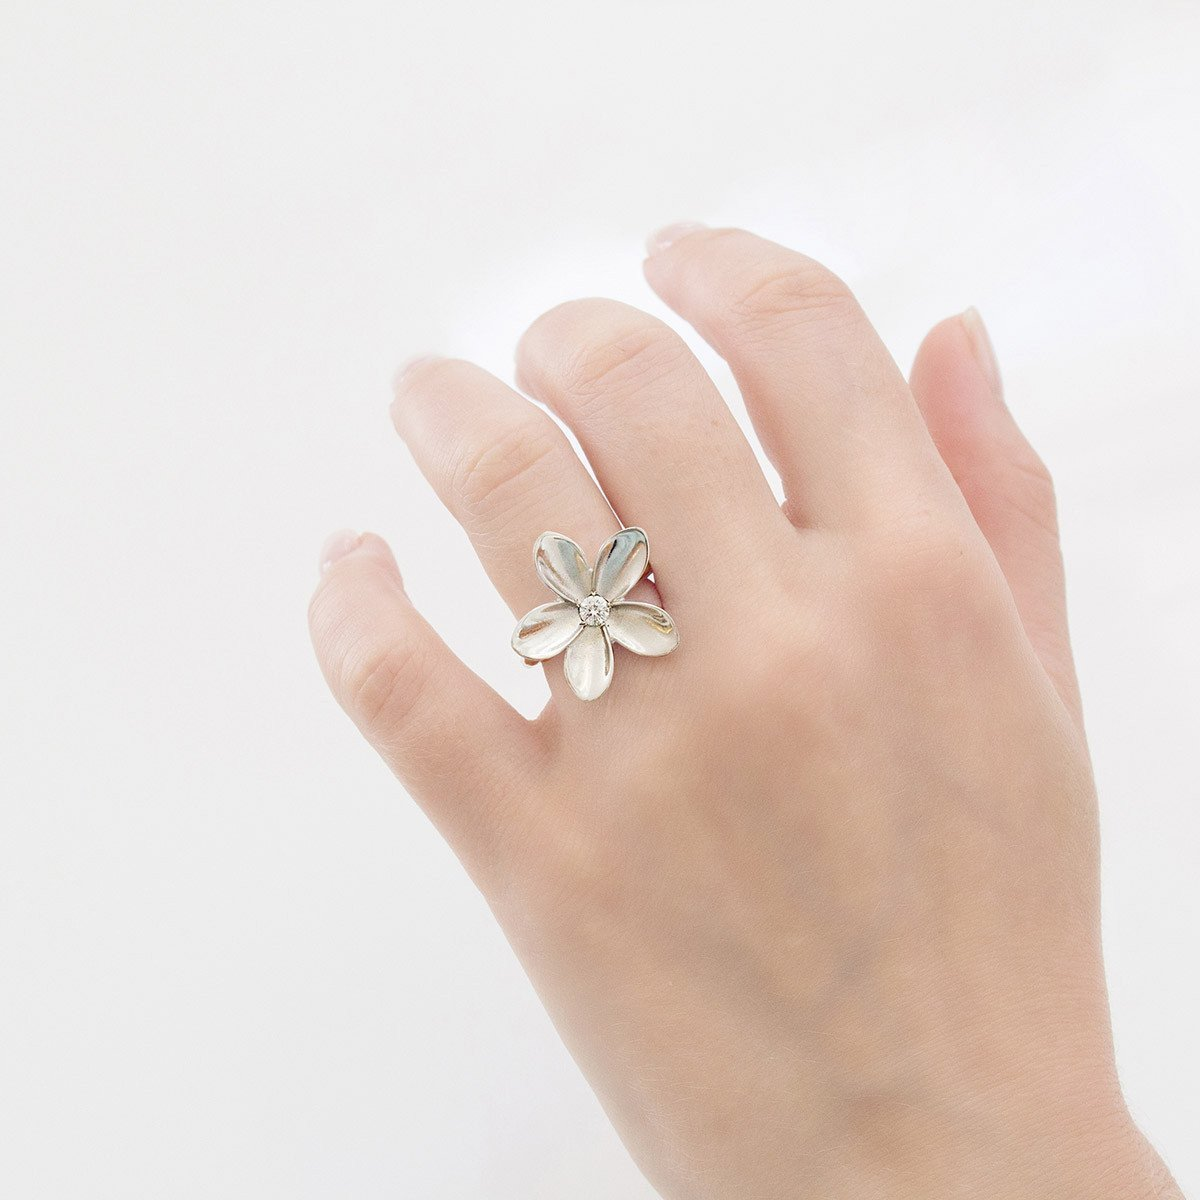 Frangipani Single Flower Ring-Rings-freeRange JEWELS-JewelStreet